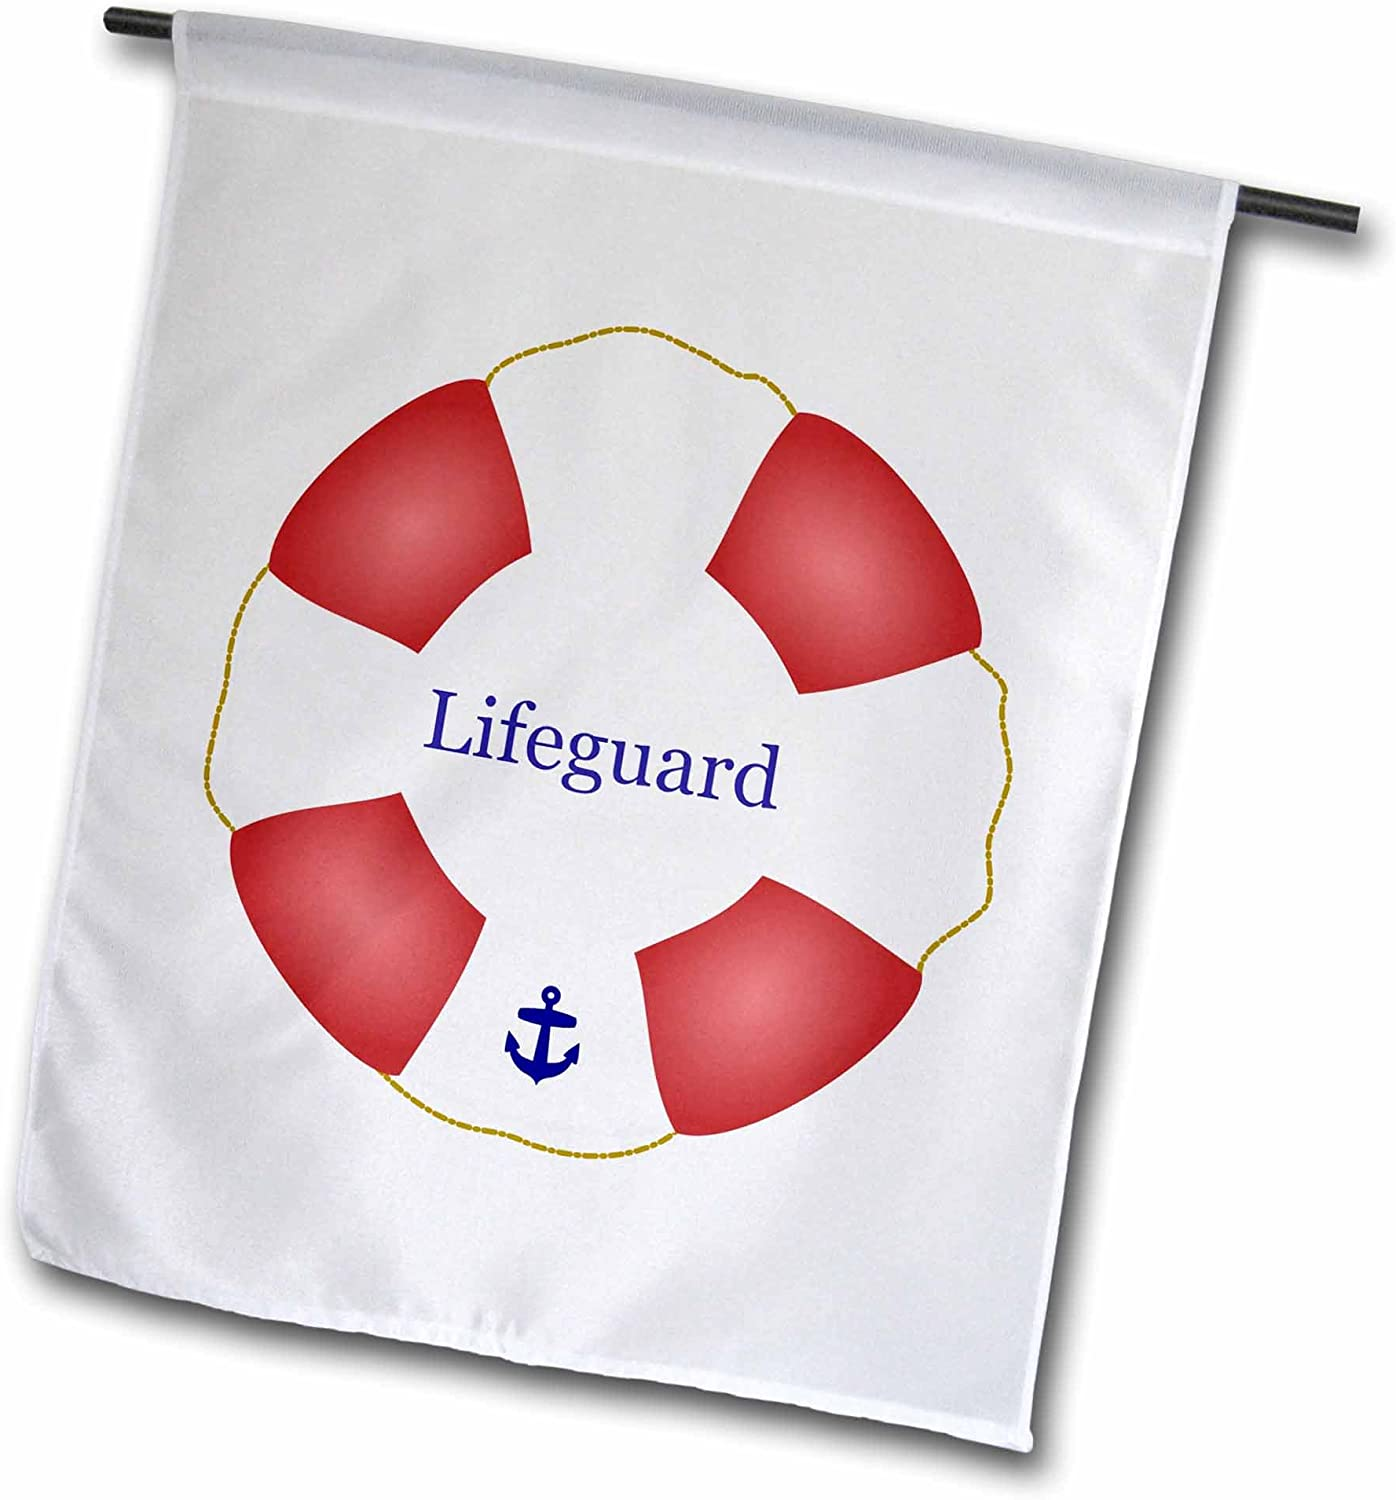 3dRose fl_112970_1 Lifeguard Lifesaver Swimming Pool Life Saver Preserver-Sea Beach Life Guard Red and White Float Garden Flag, 12 by 18-Inch